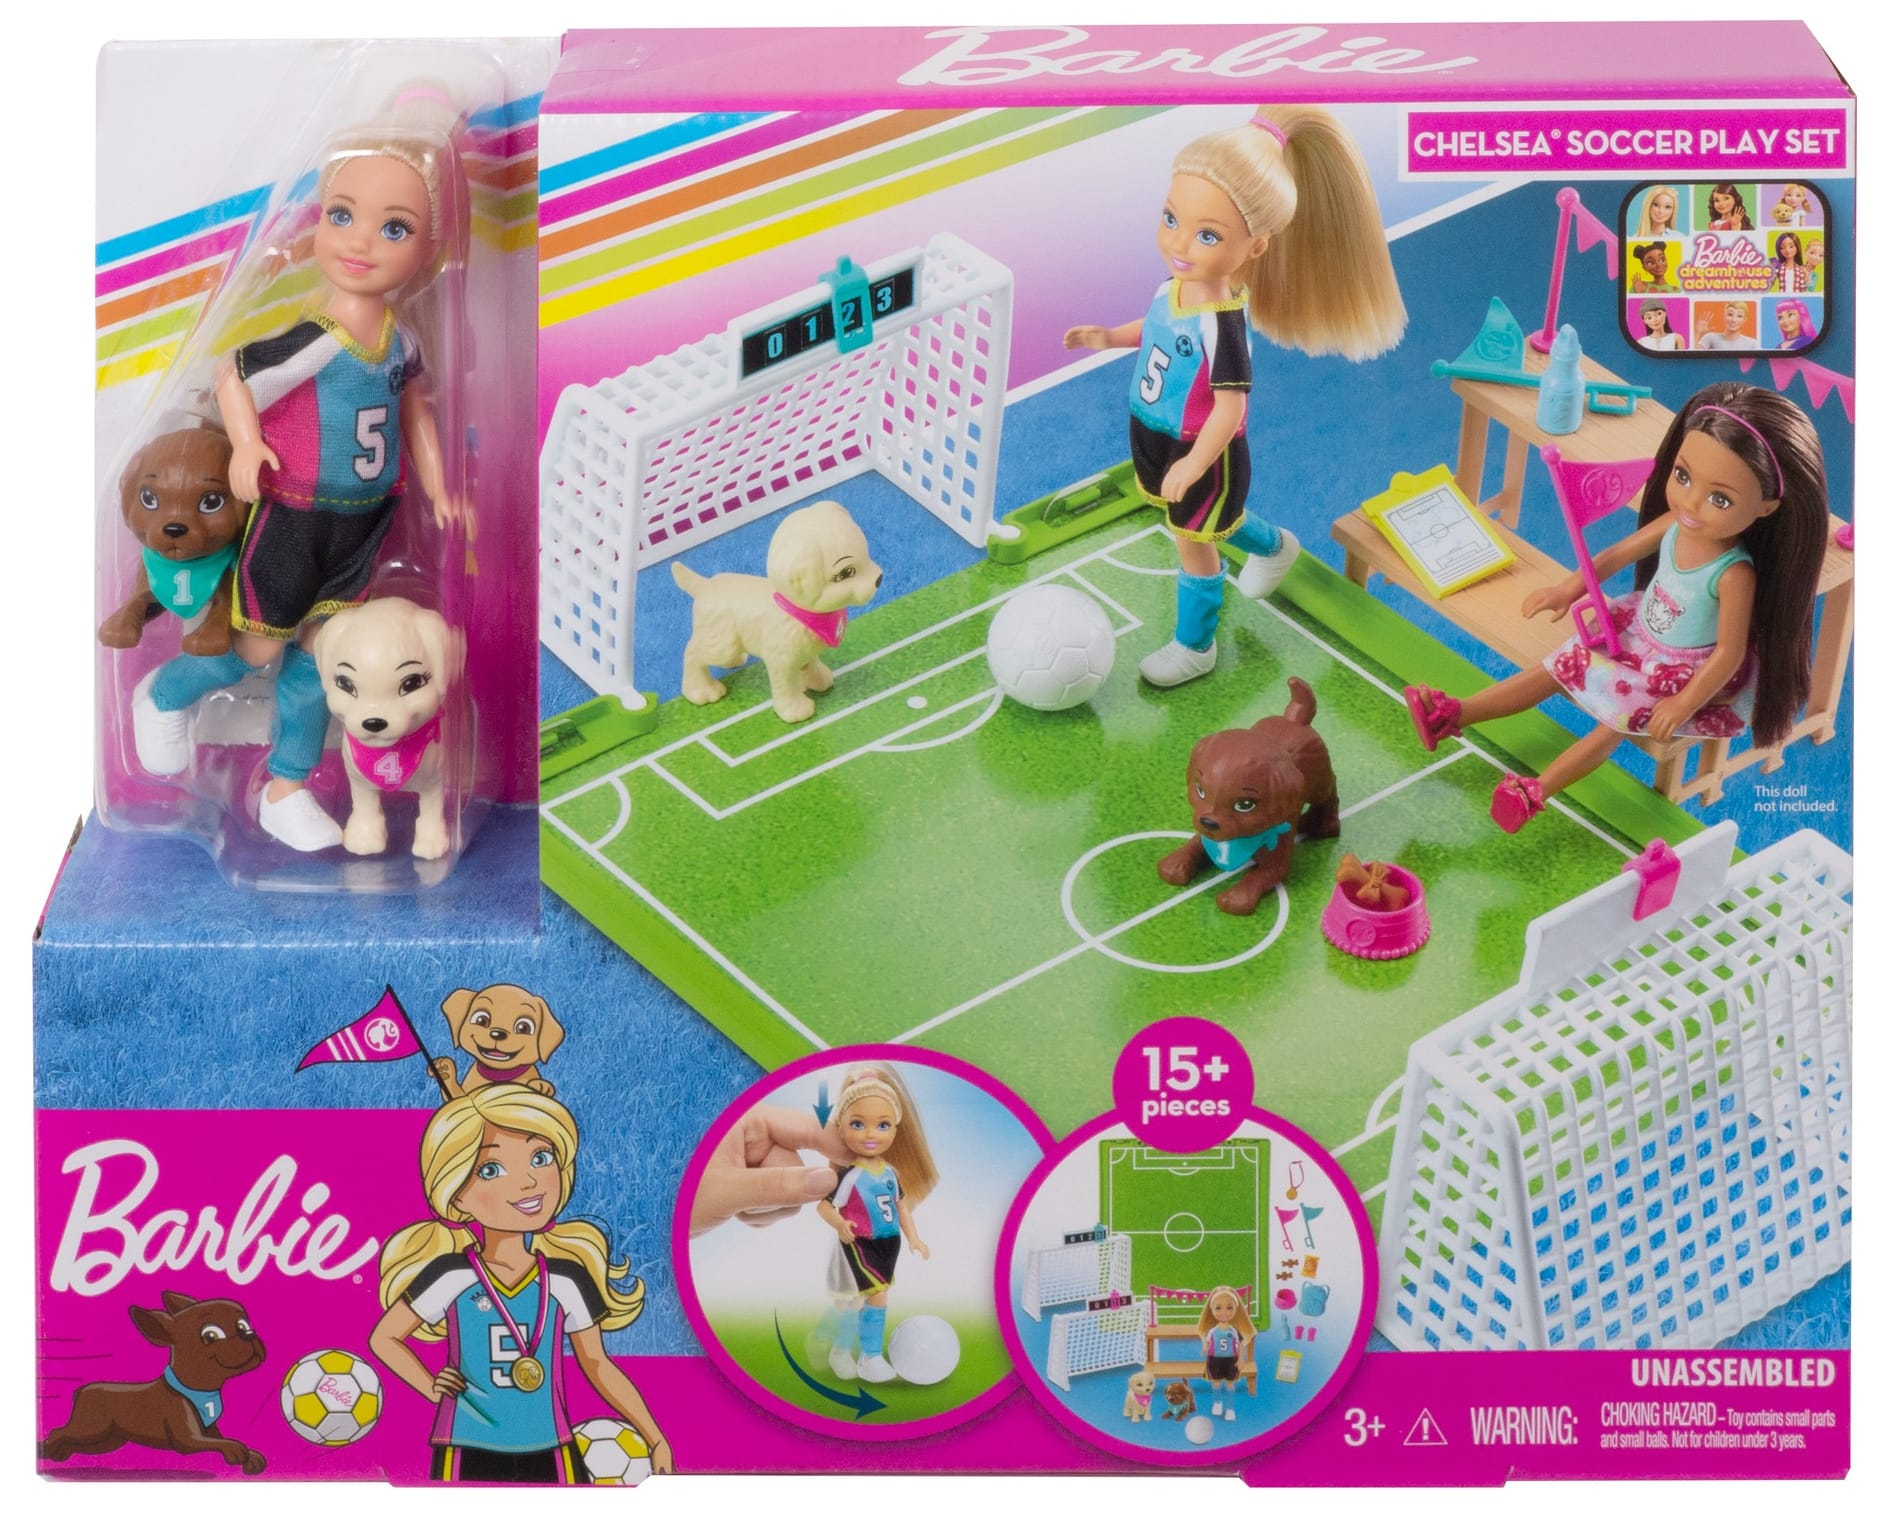 YMMV - Walmart - Barbie Dreamhouse Adventures 6-Inch Chelsea Doll With Soccer Playset And Accessories - $1.50